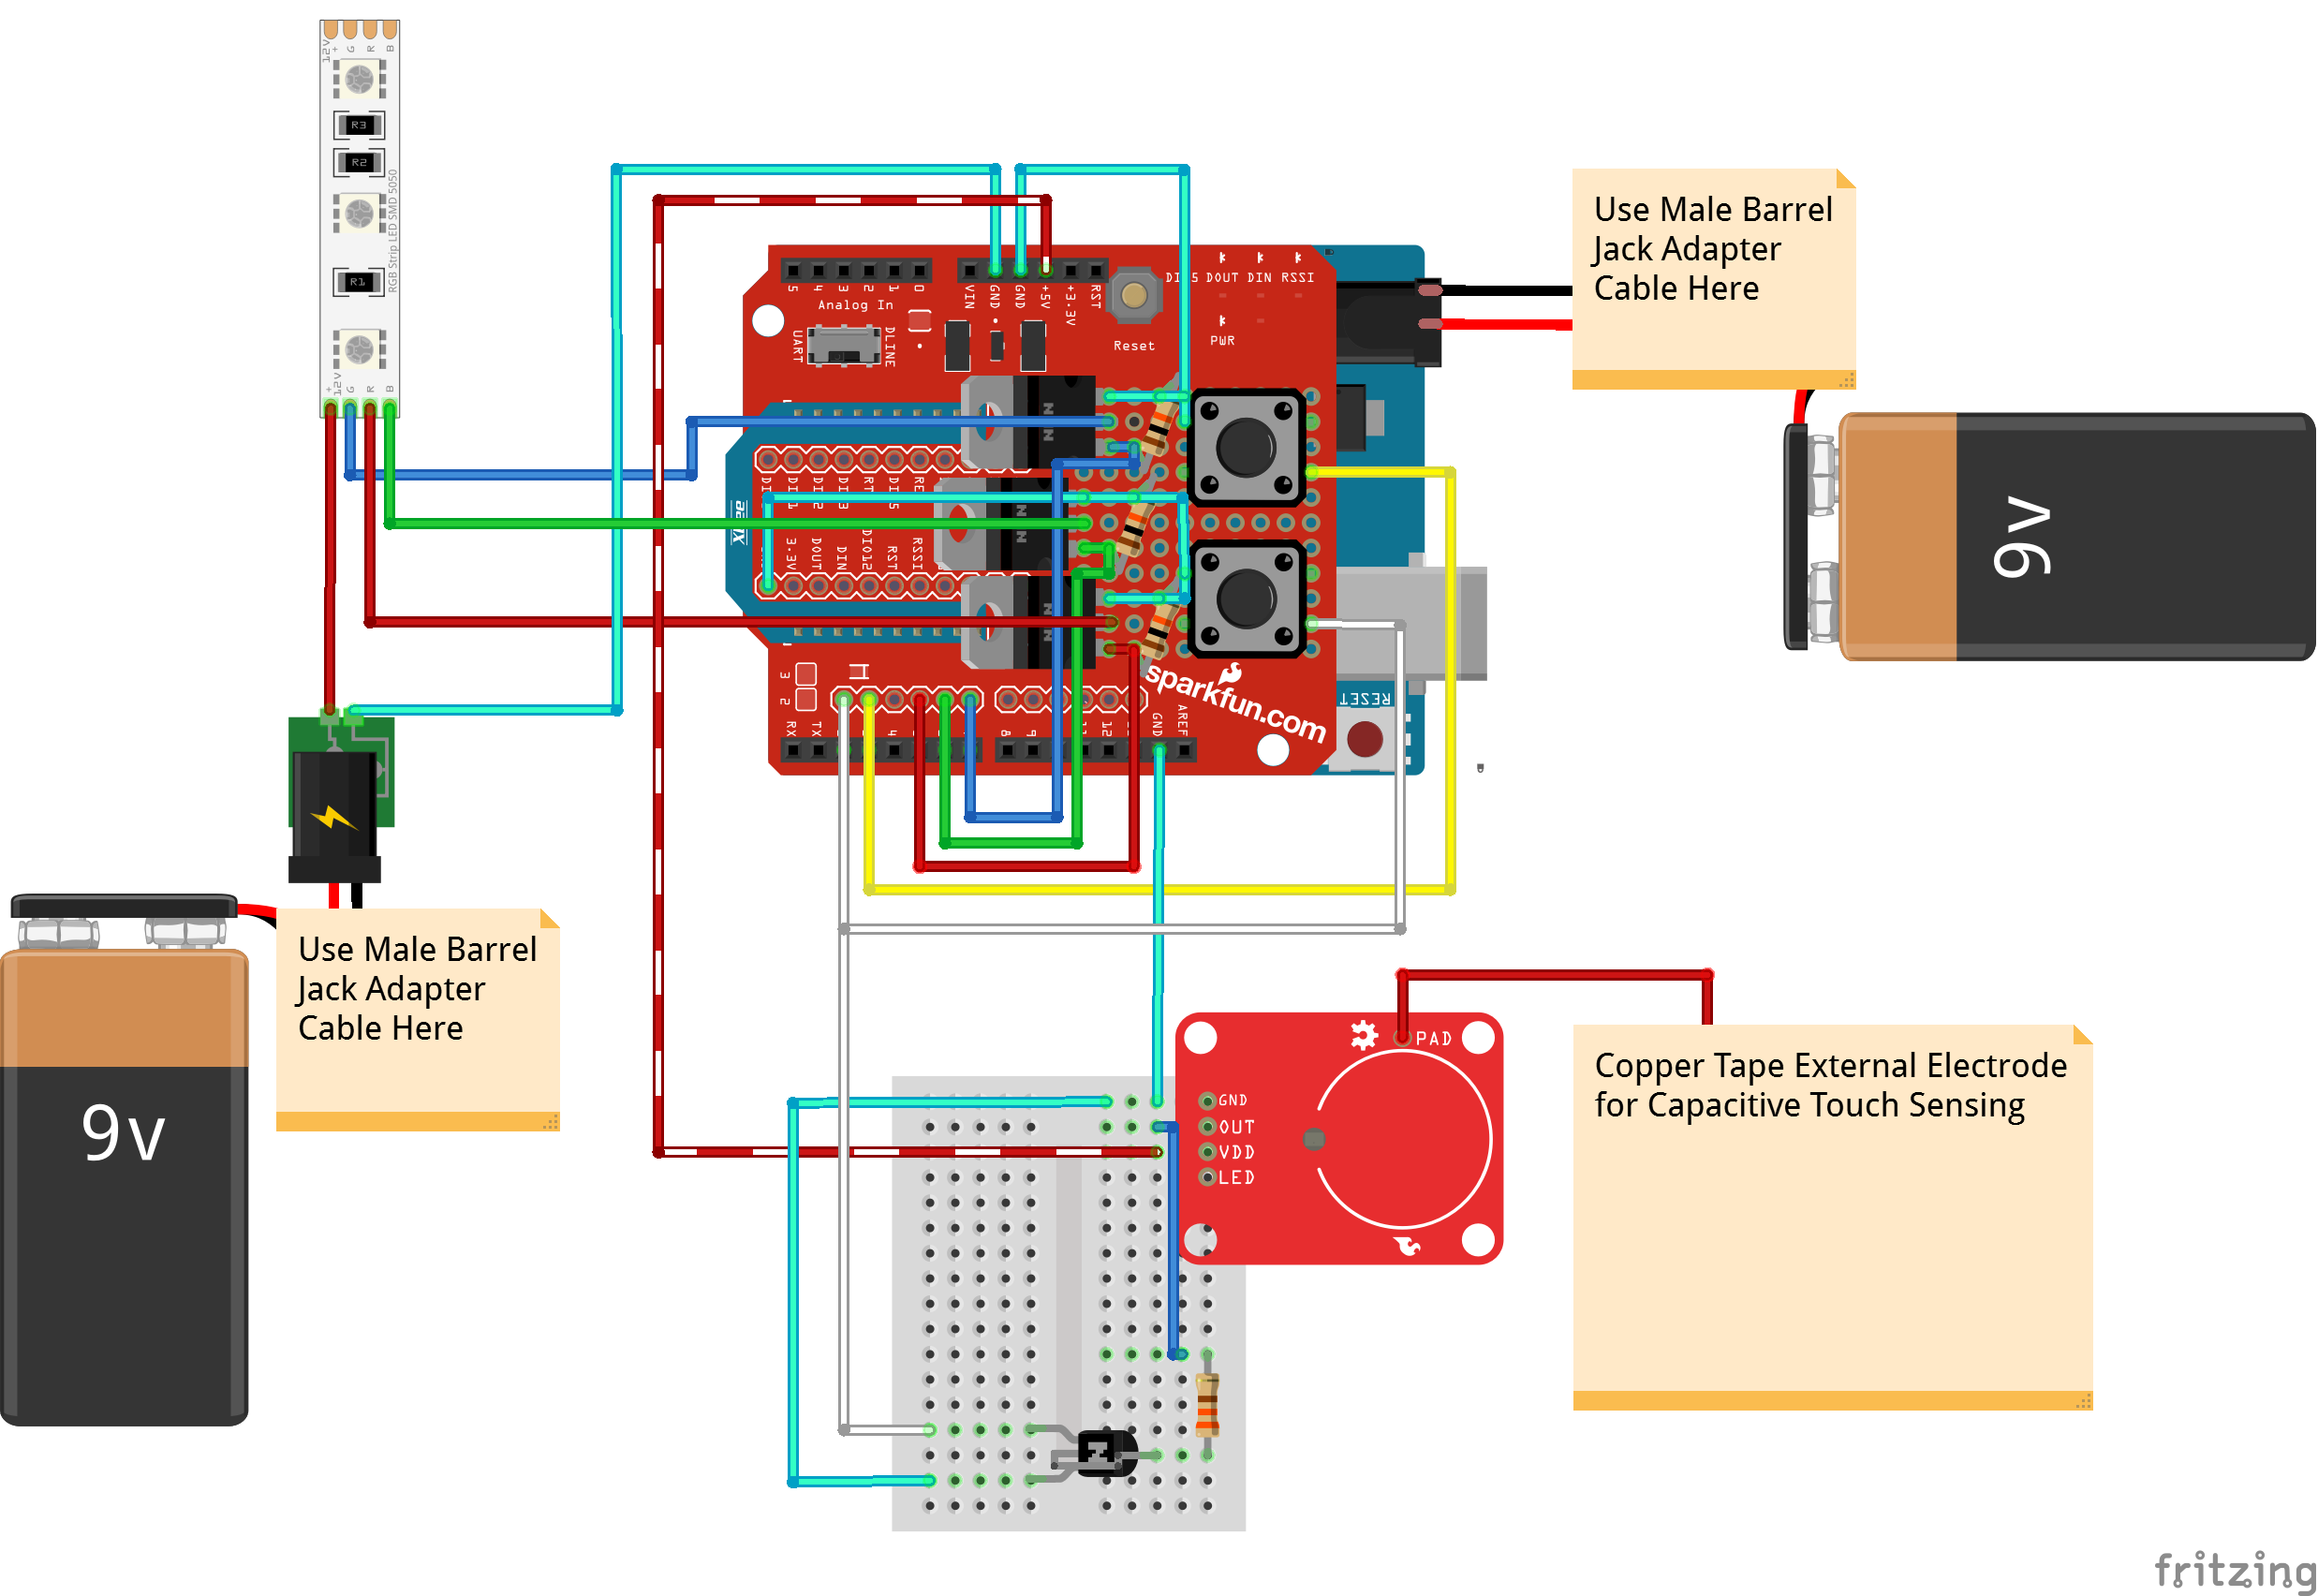 9v Led Wiring Diagram 3 Library Together With 555 Timer Circuit In Addition Capacitor Interactive 3d Printed Lit Diamond Prop Capacitive Touch Sensing Fritzing